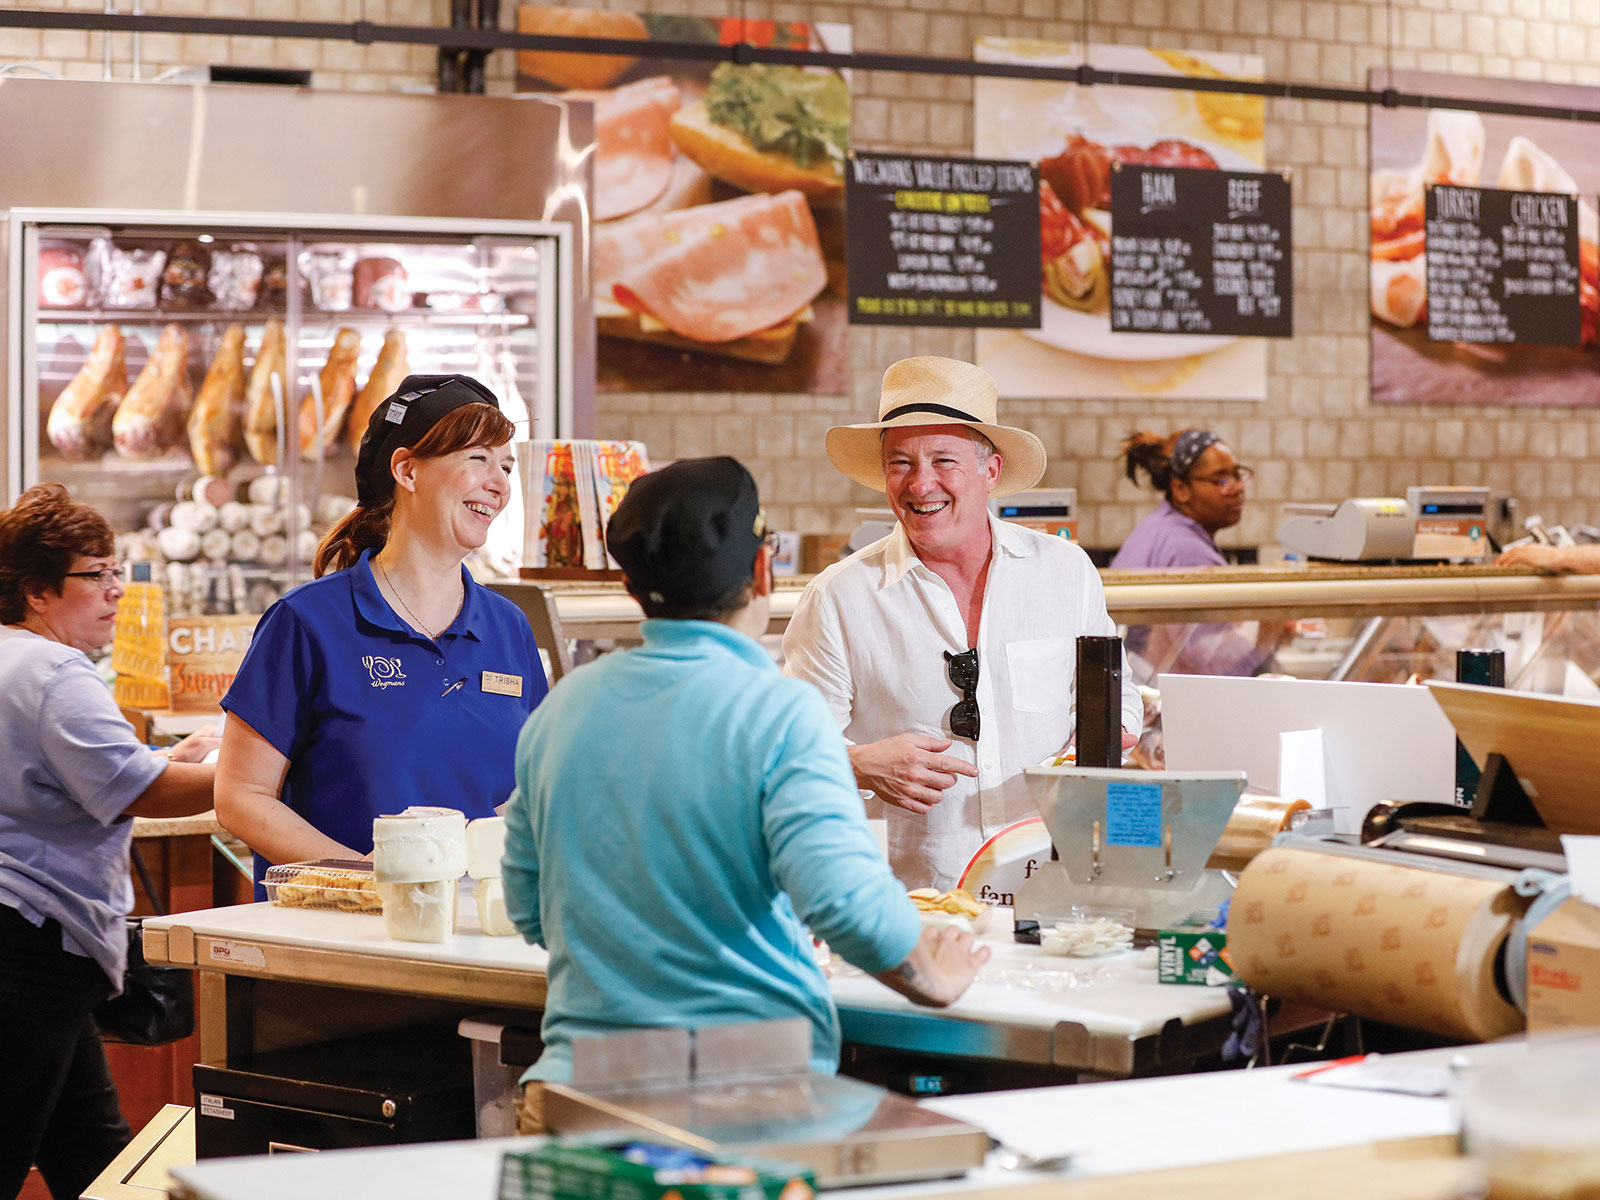 I Spent Nearly a Whole Day at Wegmans, And Here is What I Learned